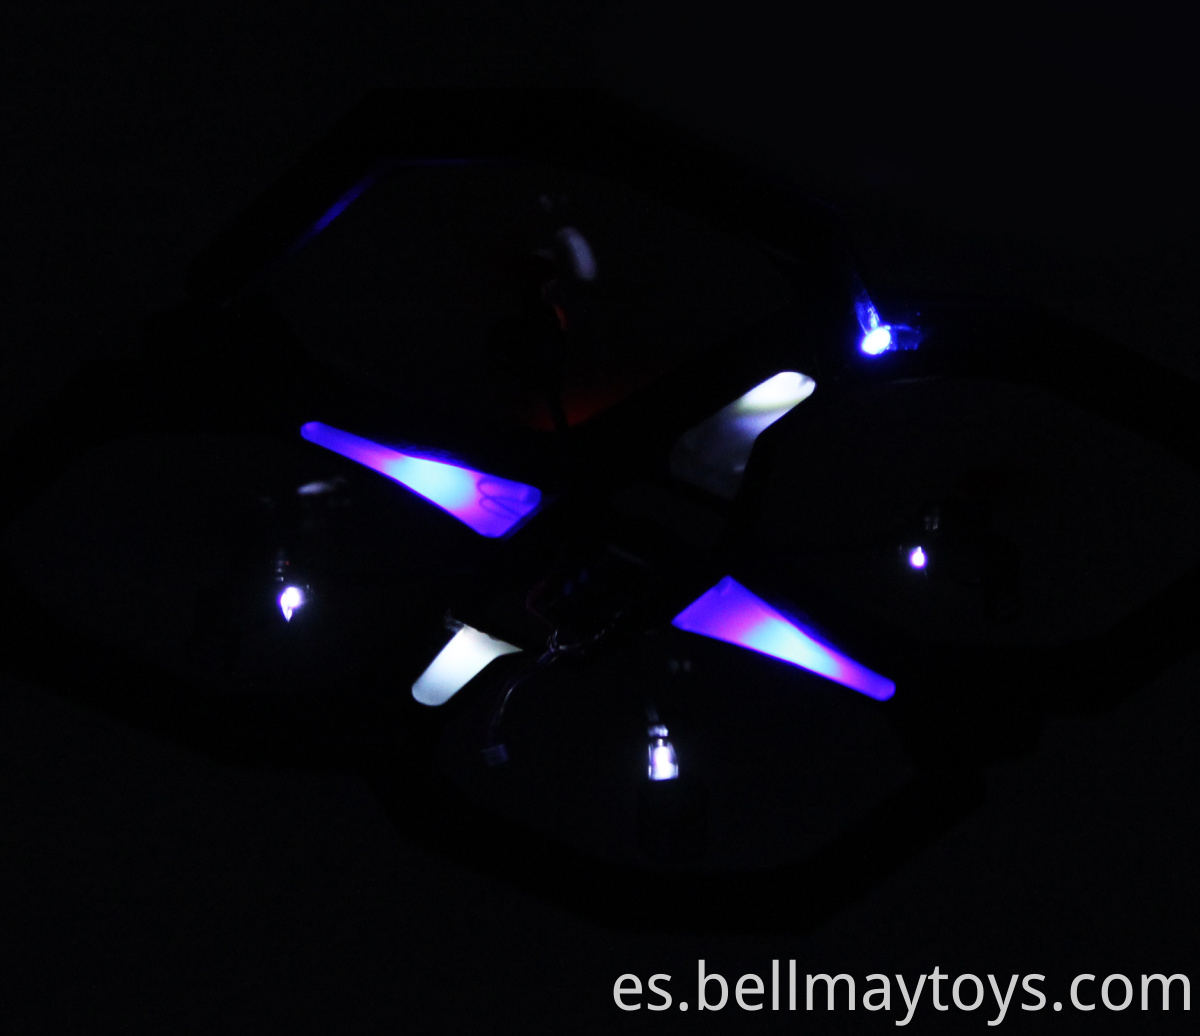 360 Degrees Rolliong Drone With Camera